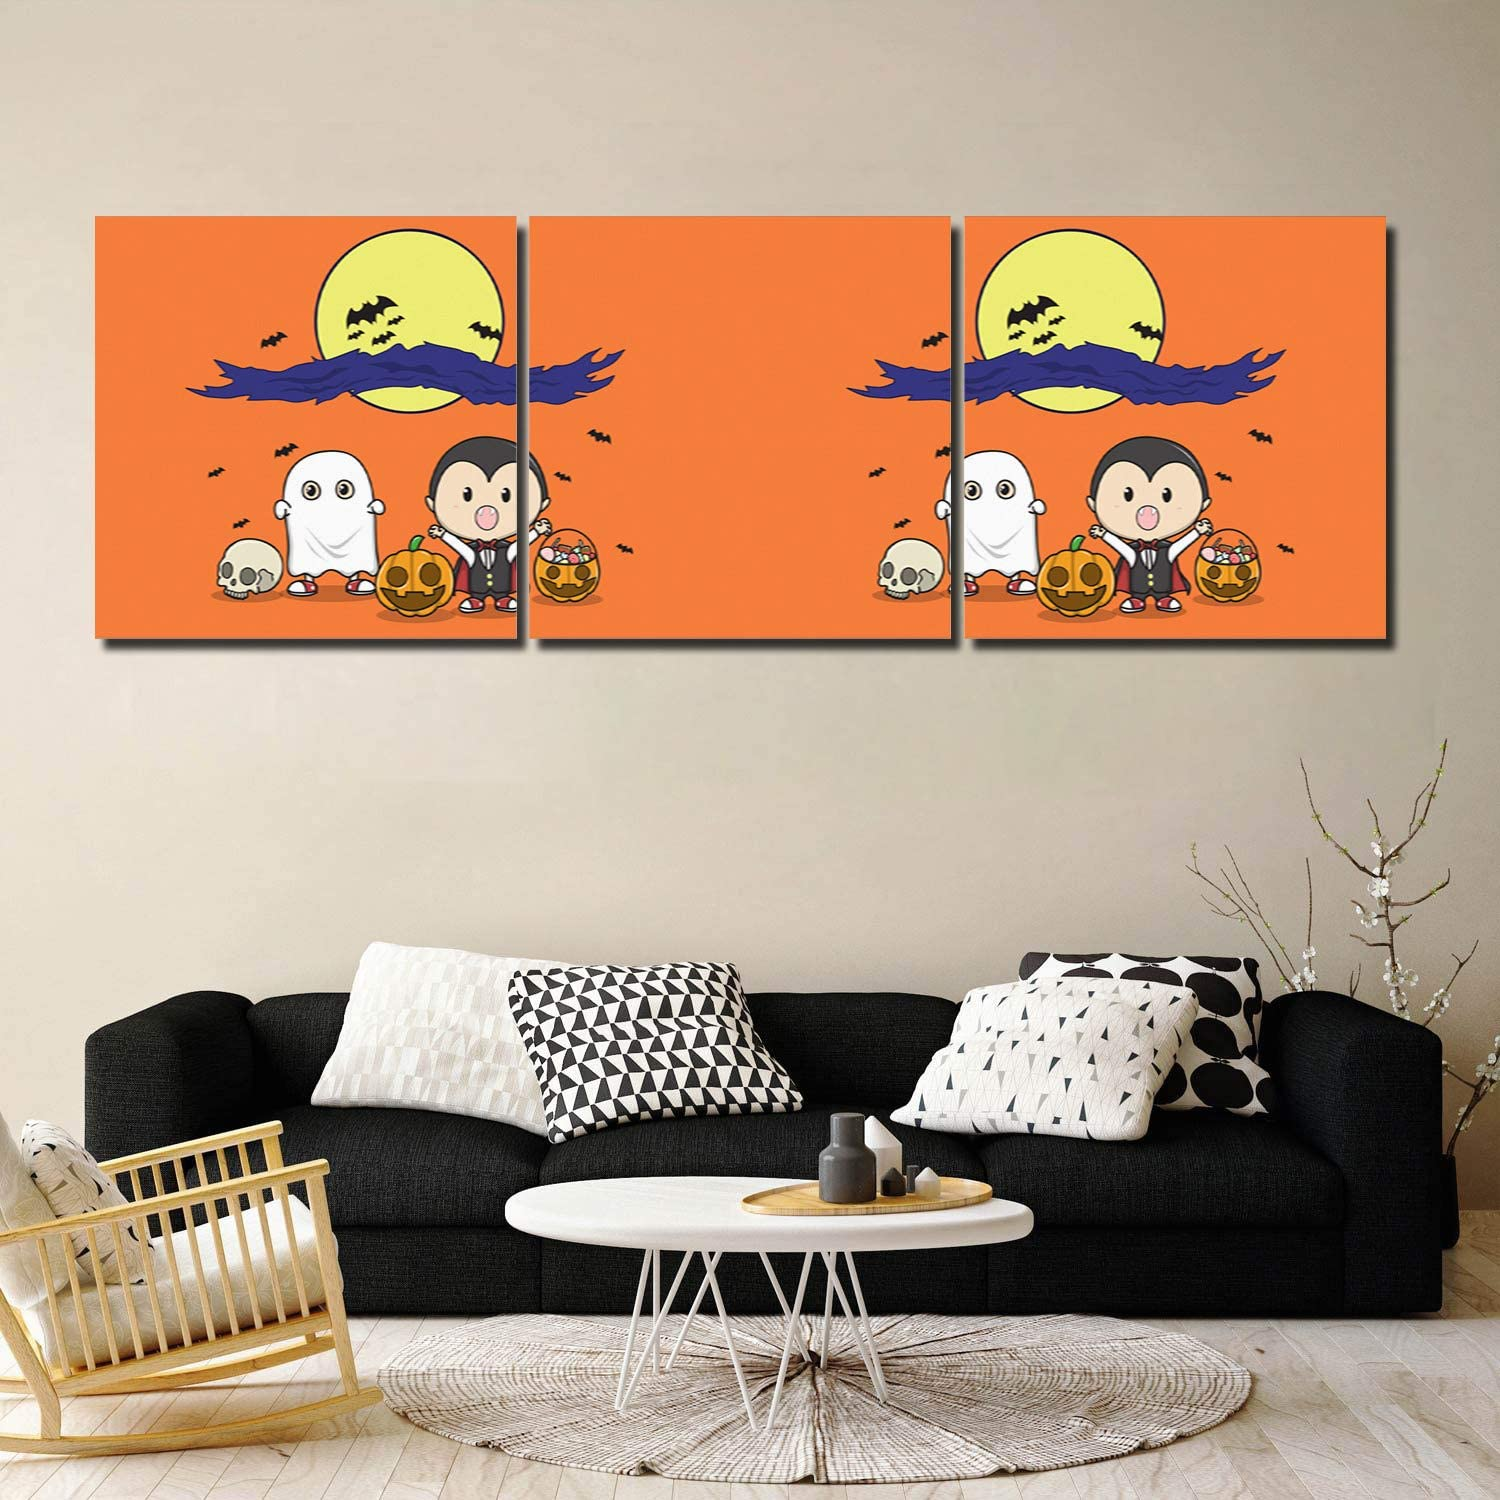 Framed Max 58% OFF Wall Art Halloween 3 Painting Canvas Panel New mail order Prints Artwork